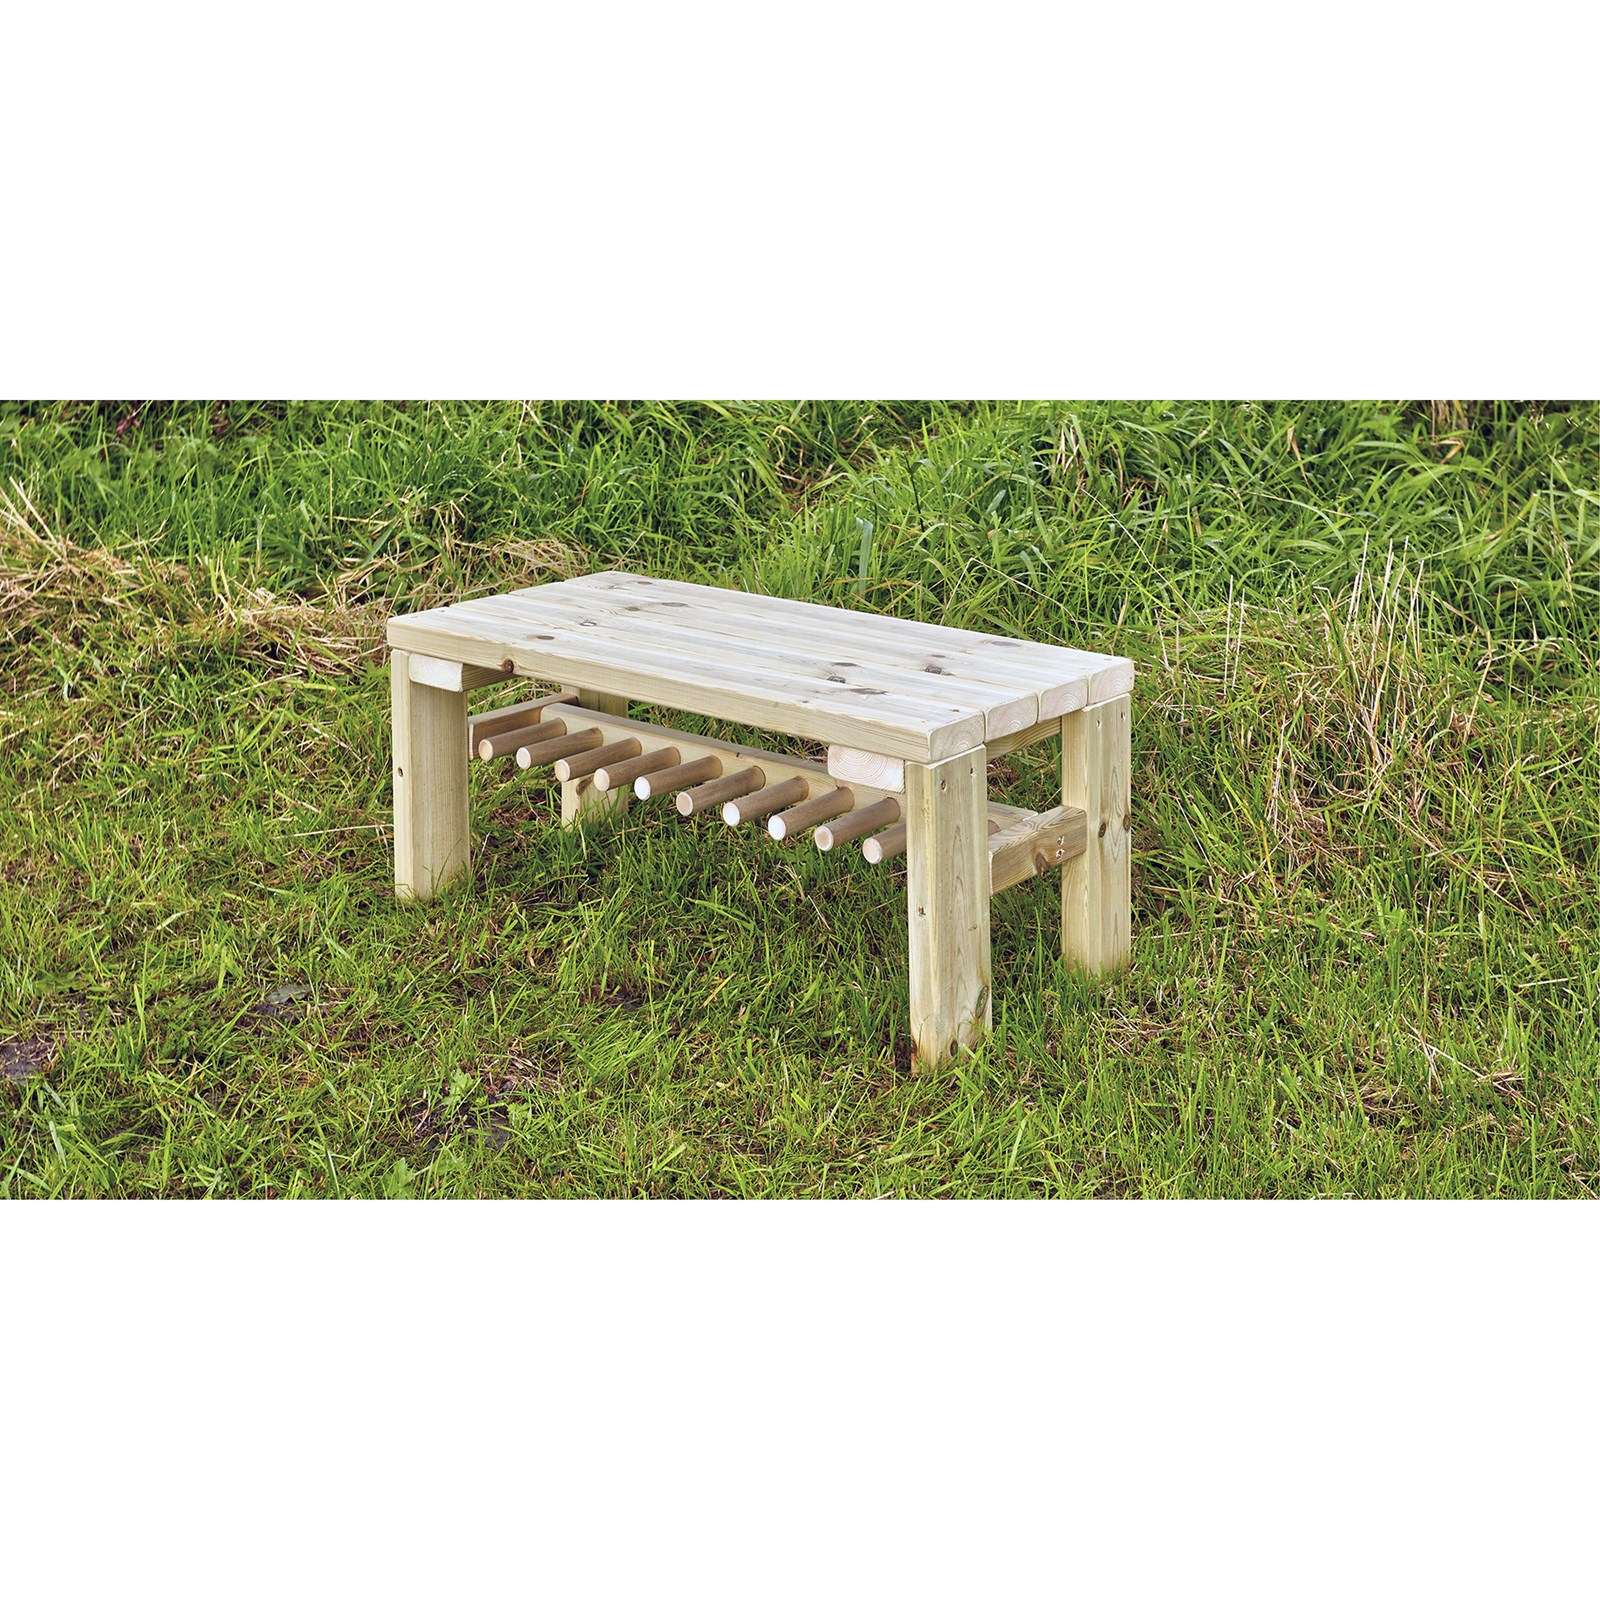 Welly Storage Bench from Hope Education